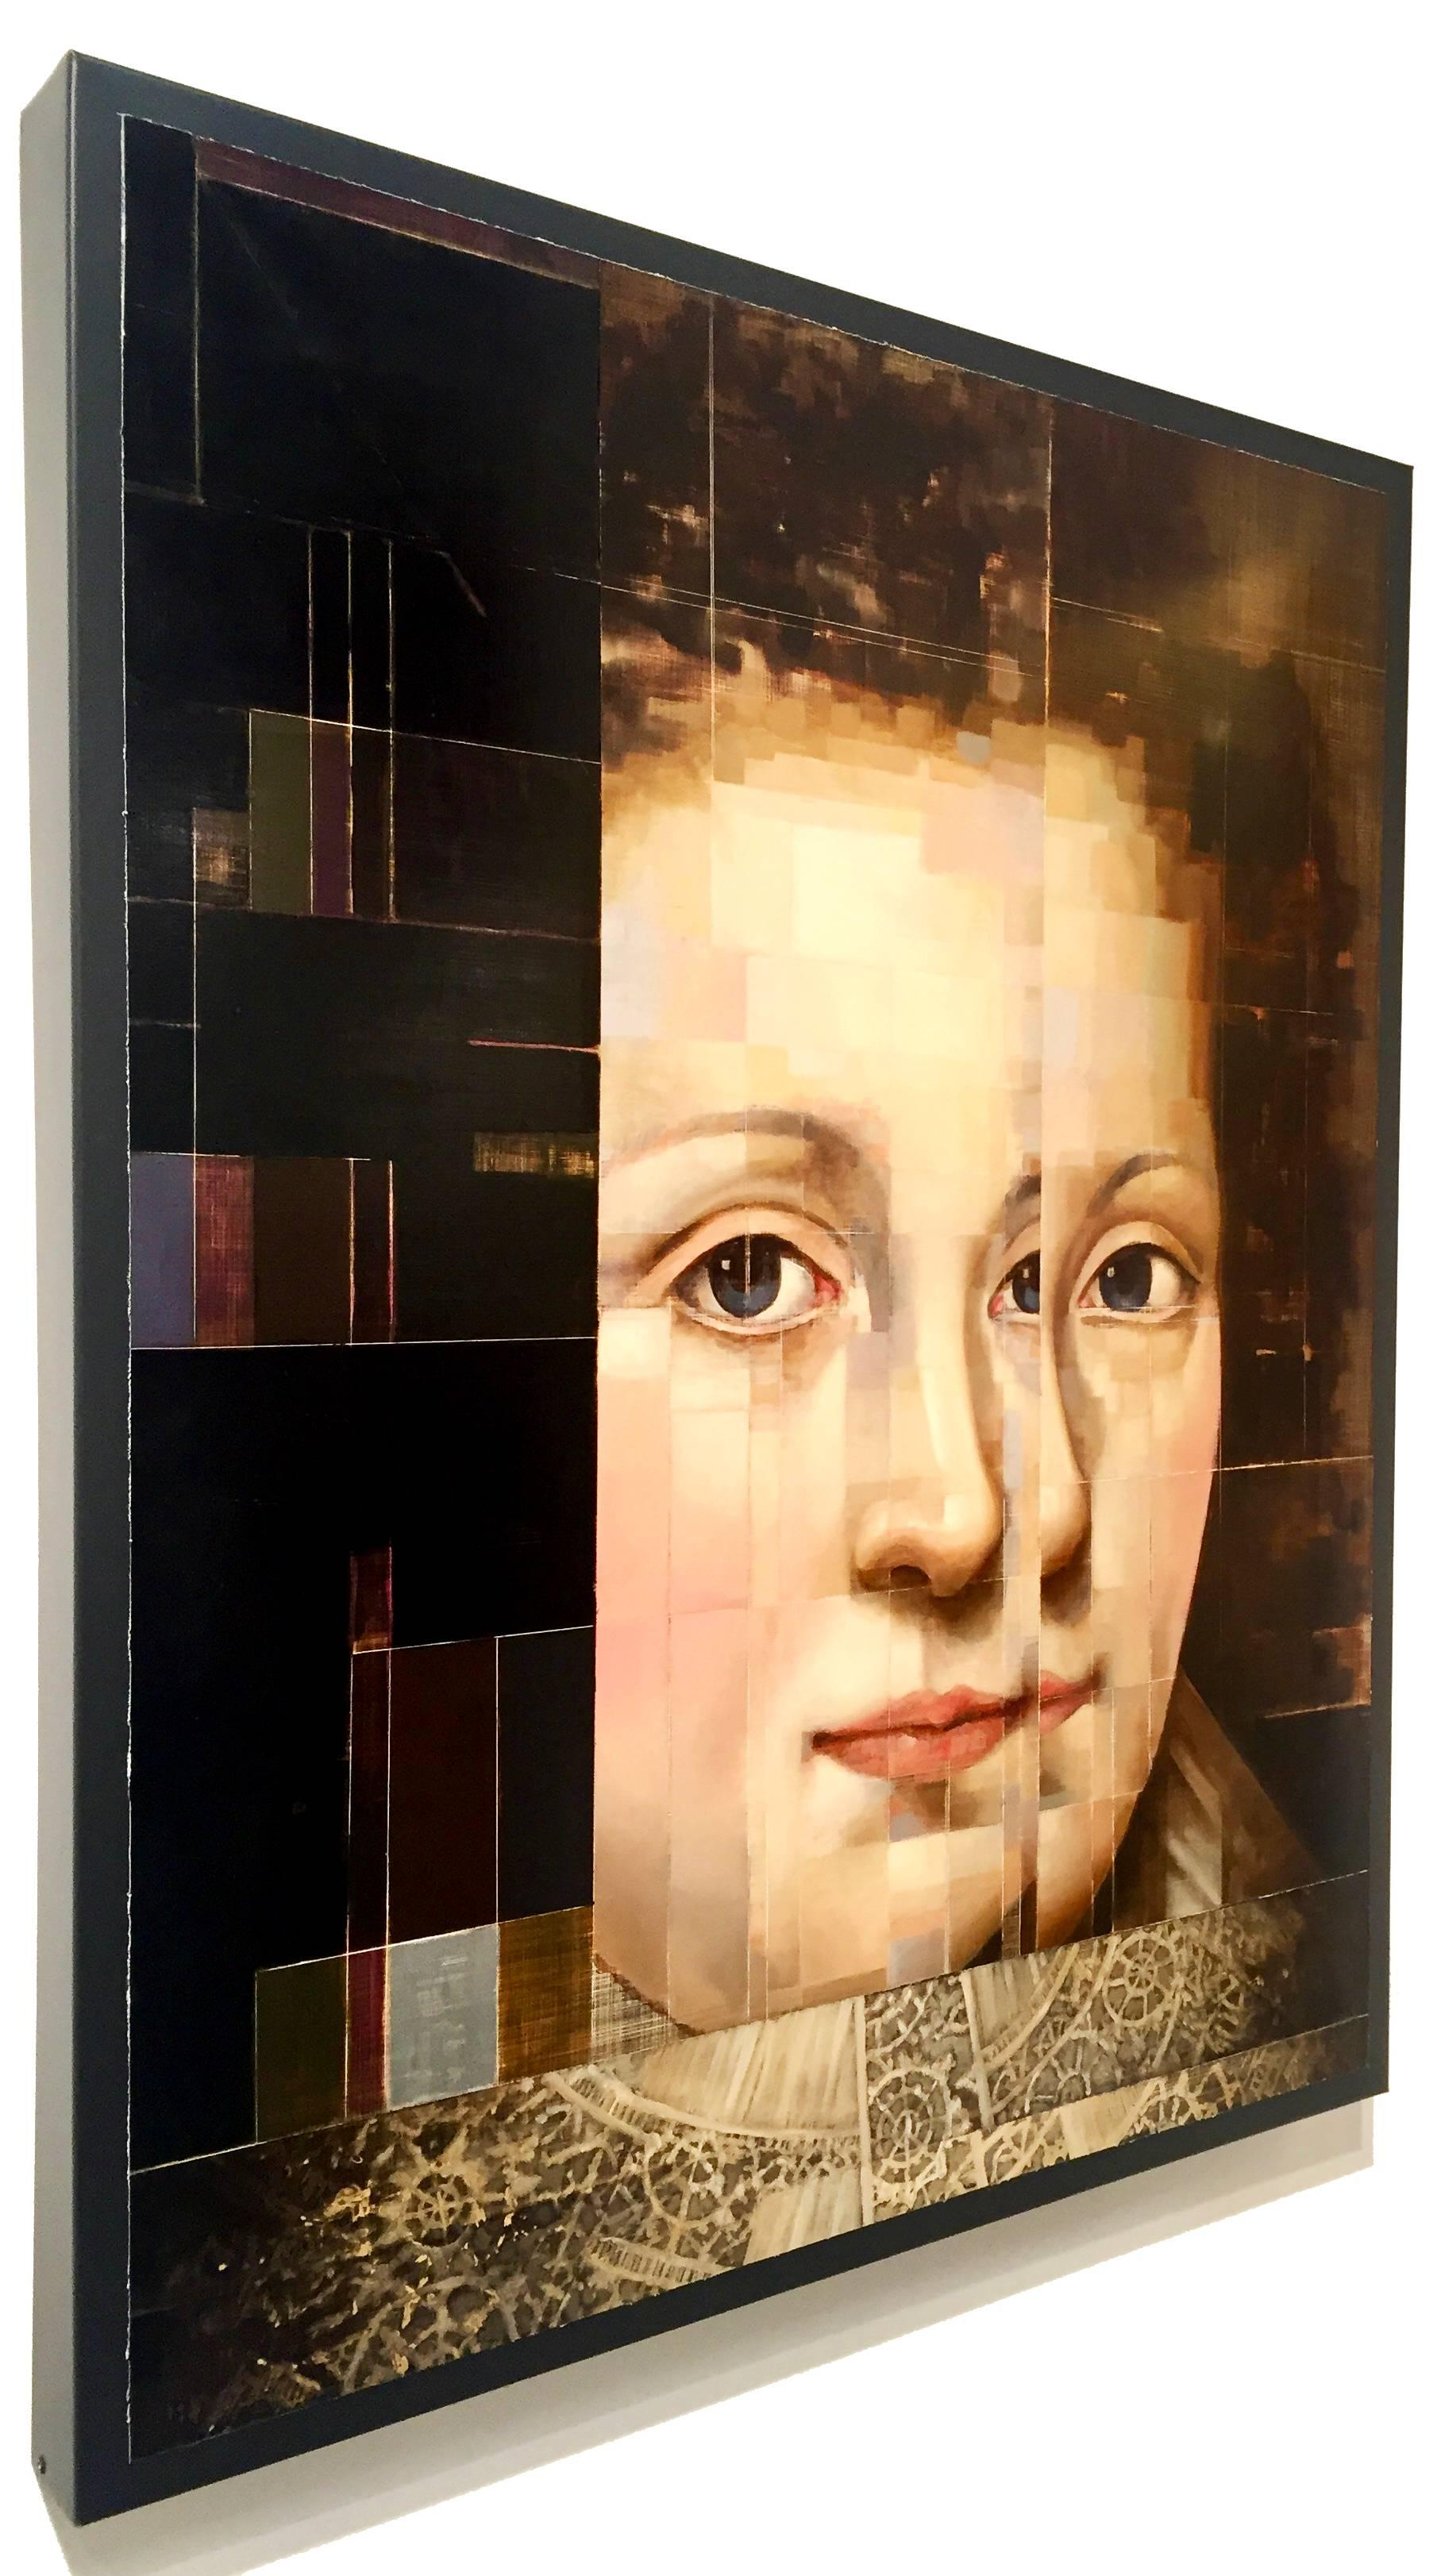 Countess of Arundel with Matrix, Old master style modern approach, Oil on metal